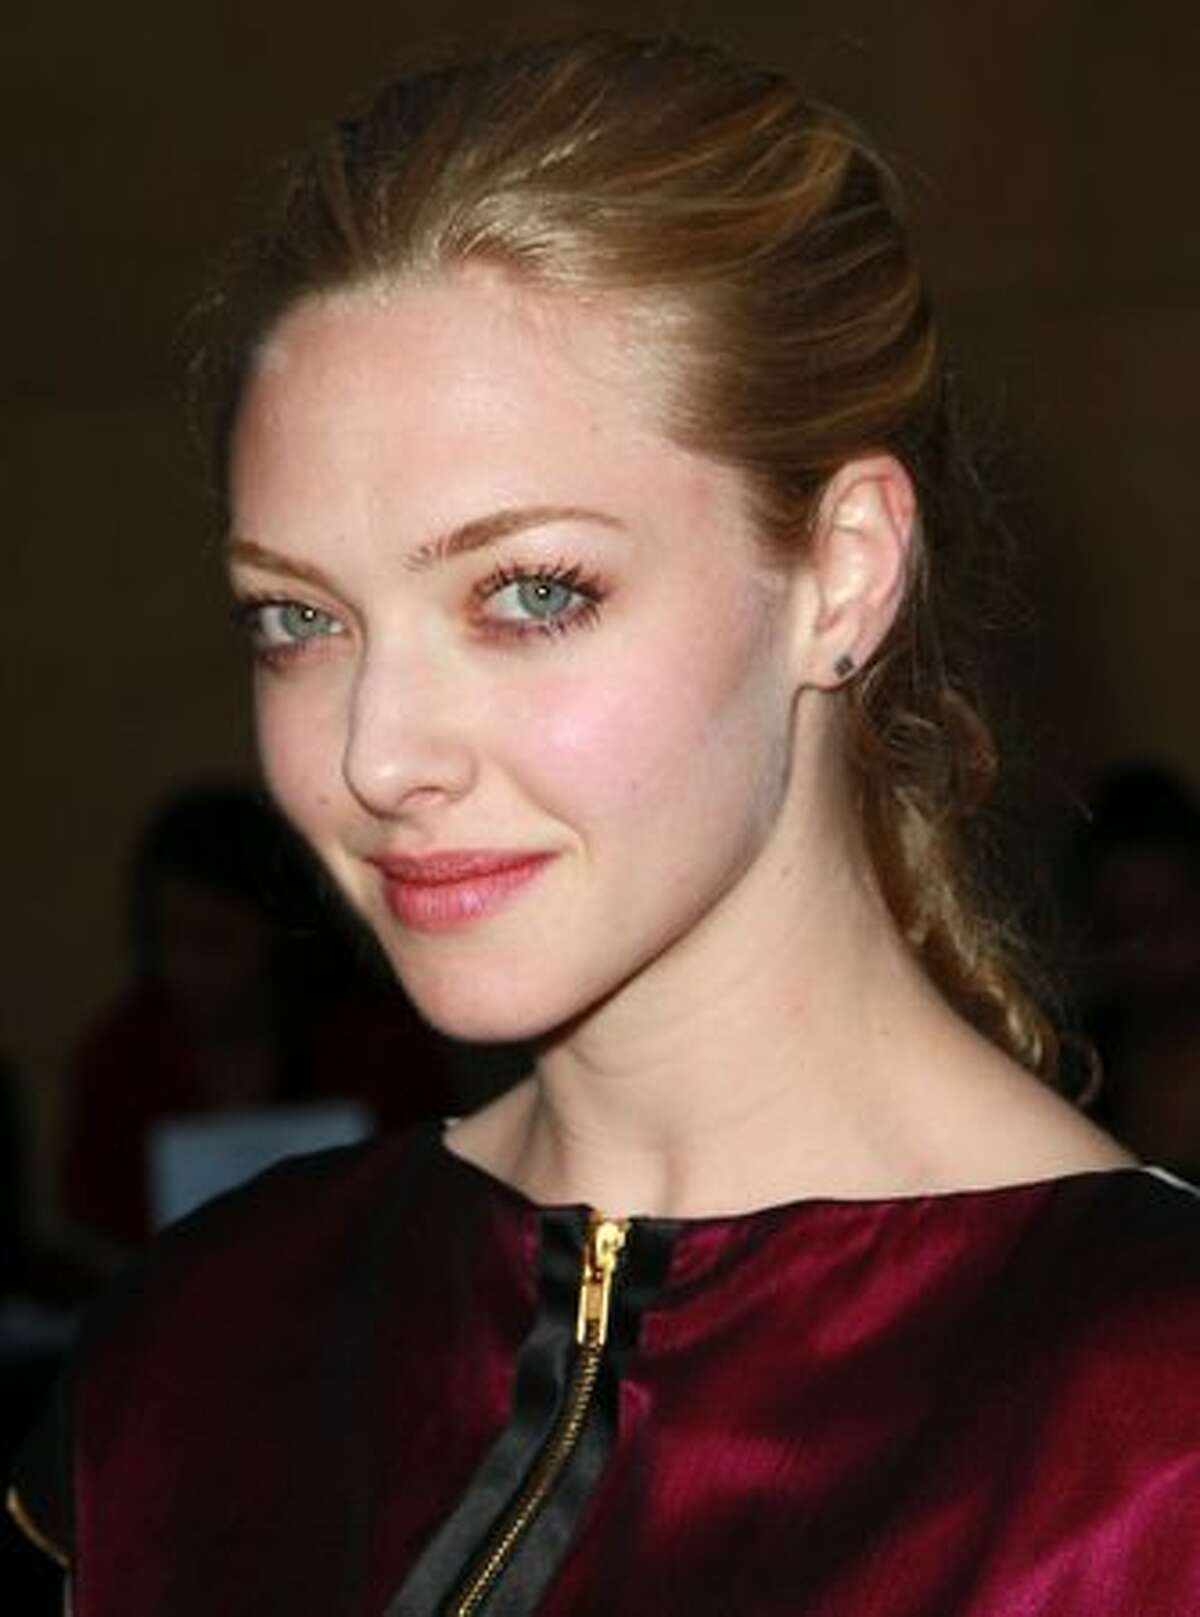 """Actress Amanda Seyfried attends the premiere of Sony Pictures Classics' """"Mother and Child"""" at the Egyptian Theater on Monday in Los Angeles, California."""